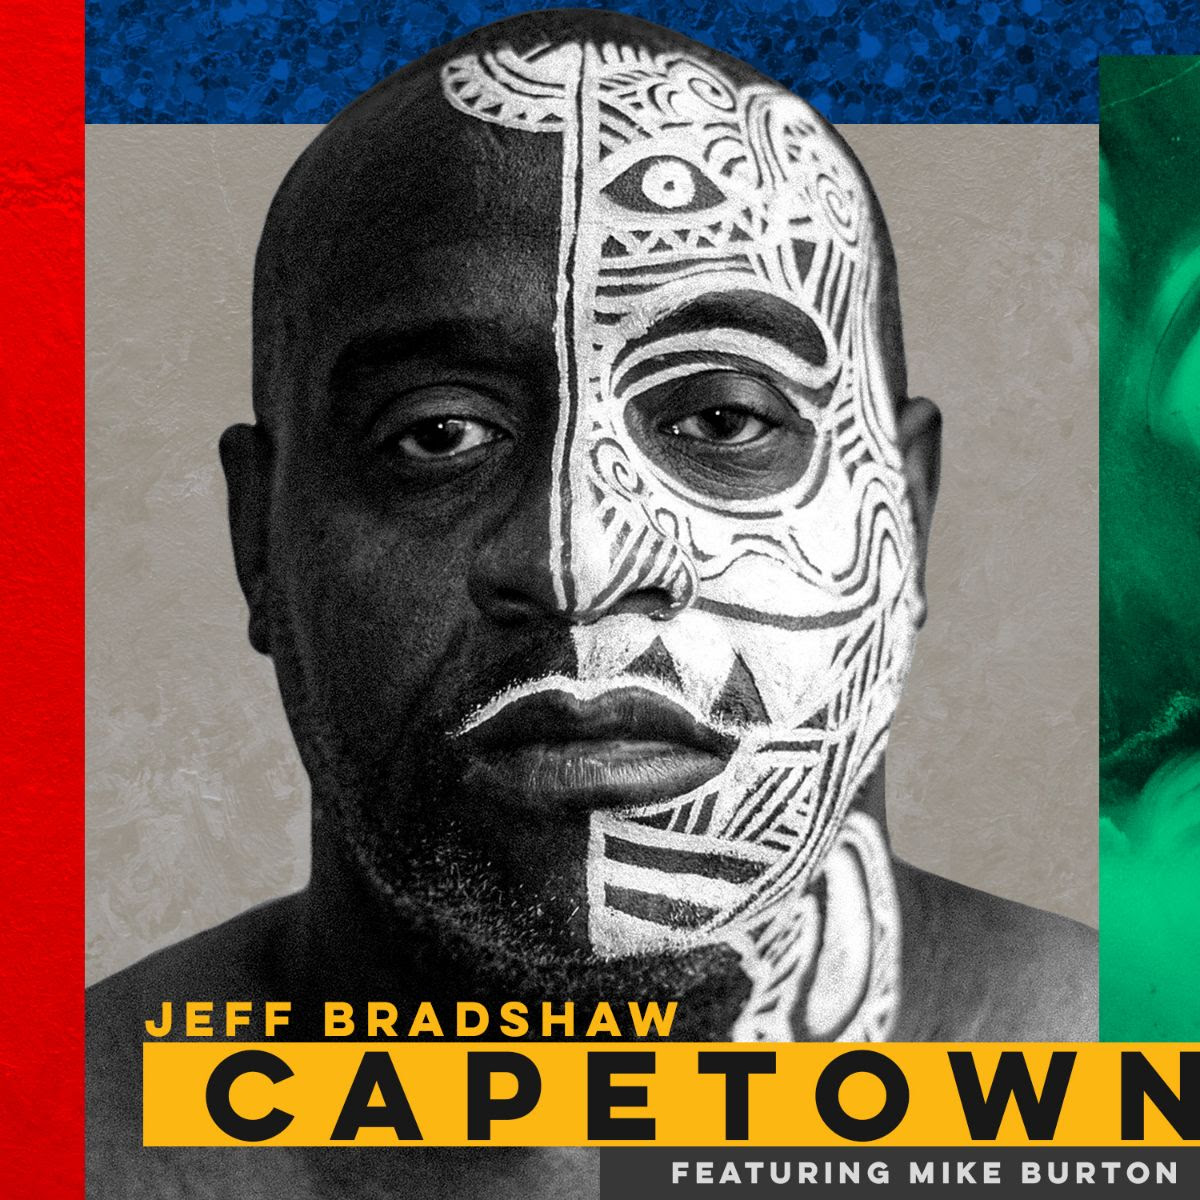 Jeff Bradshaw - Cape Town featuring Mike Burton